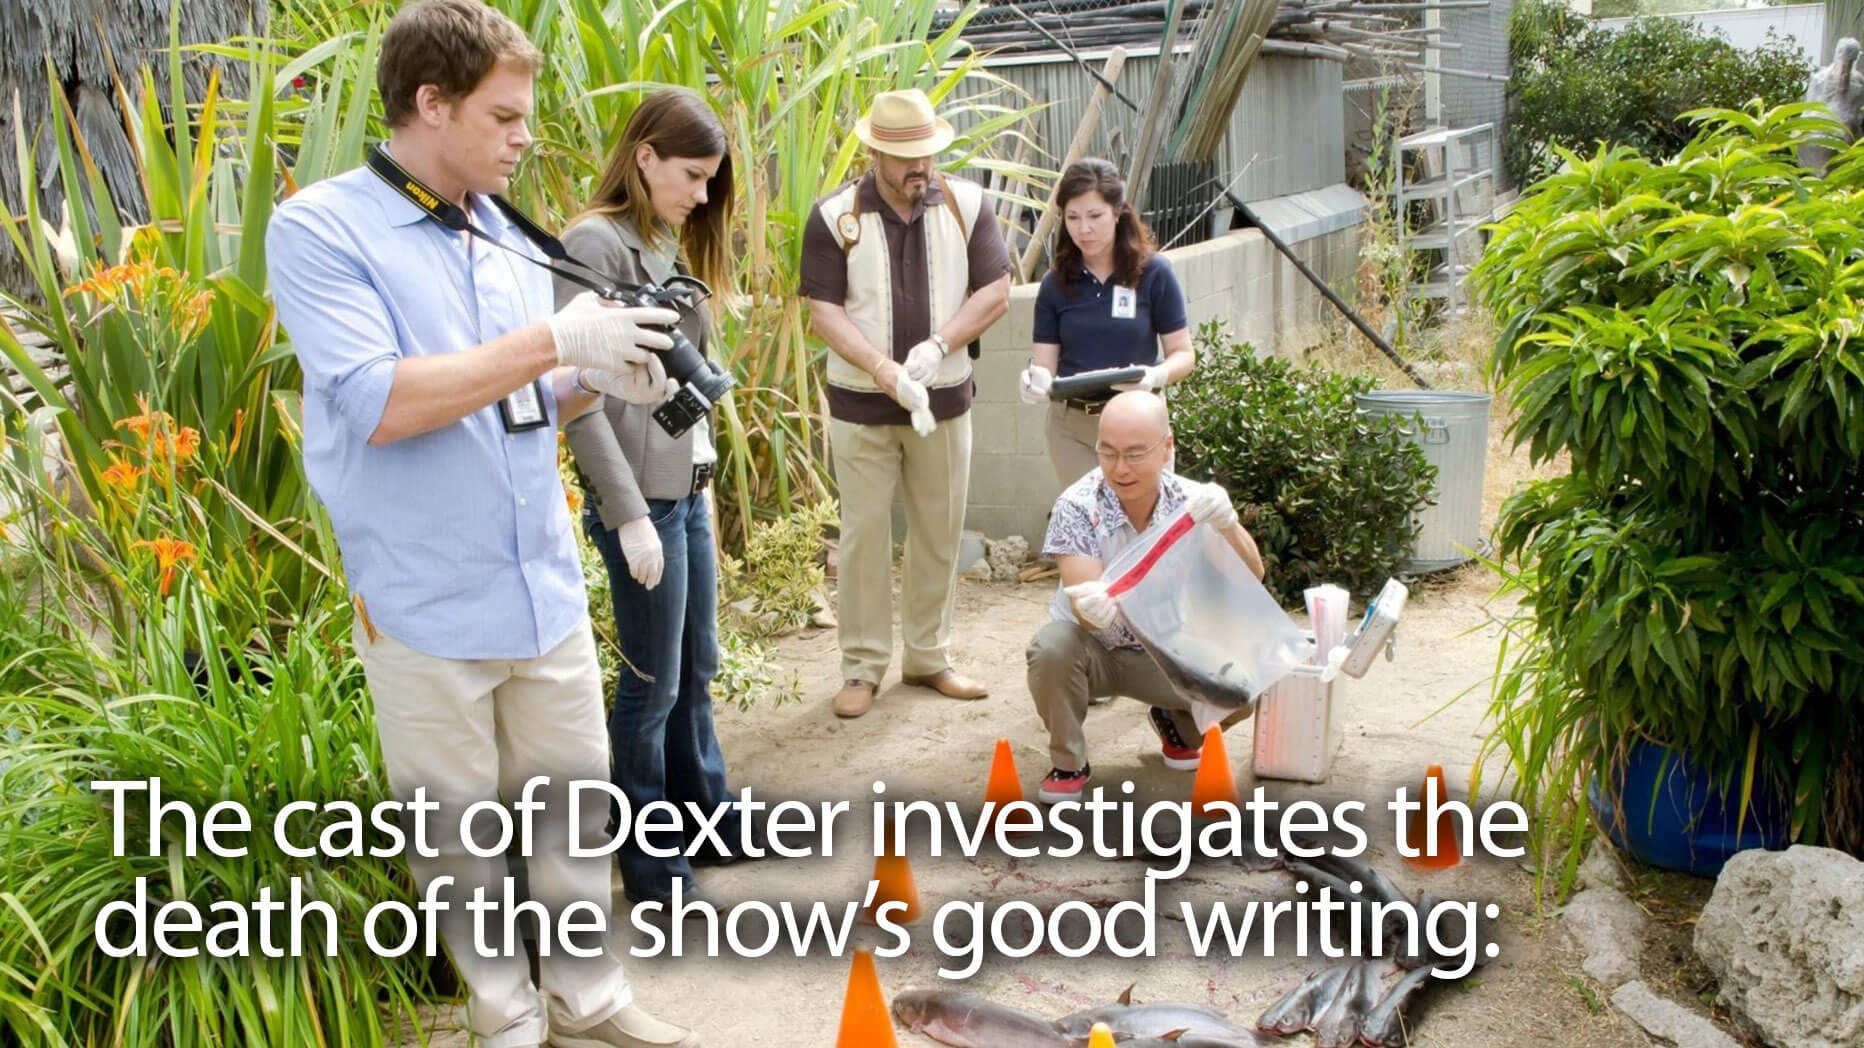 A picture from the TV show Dexter